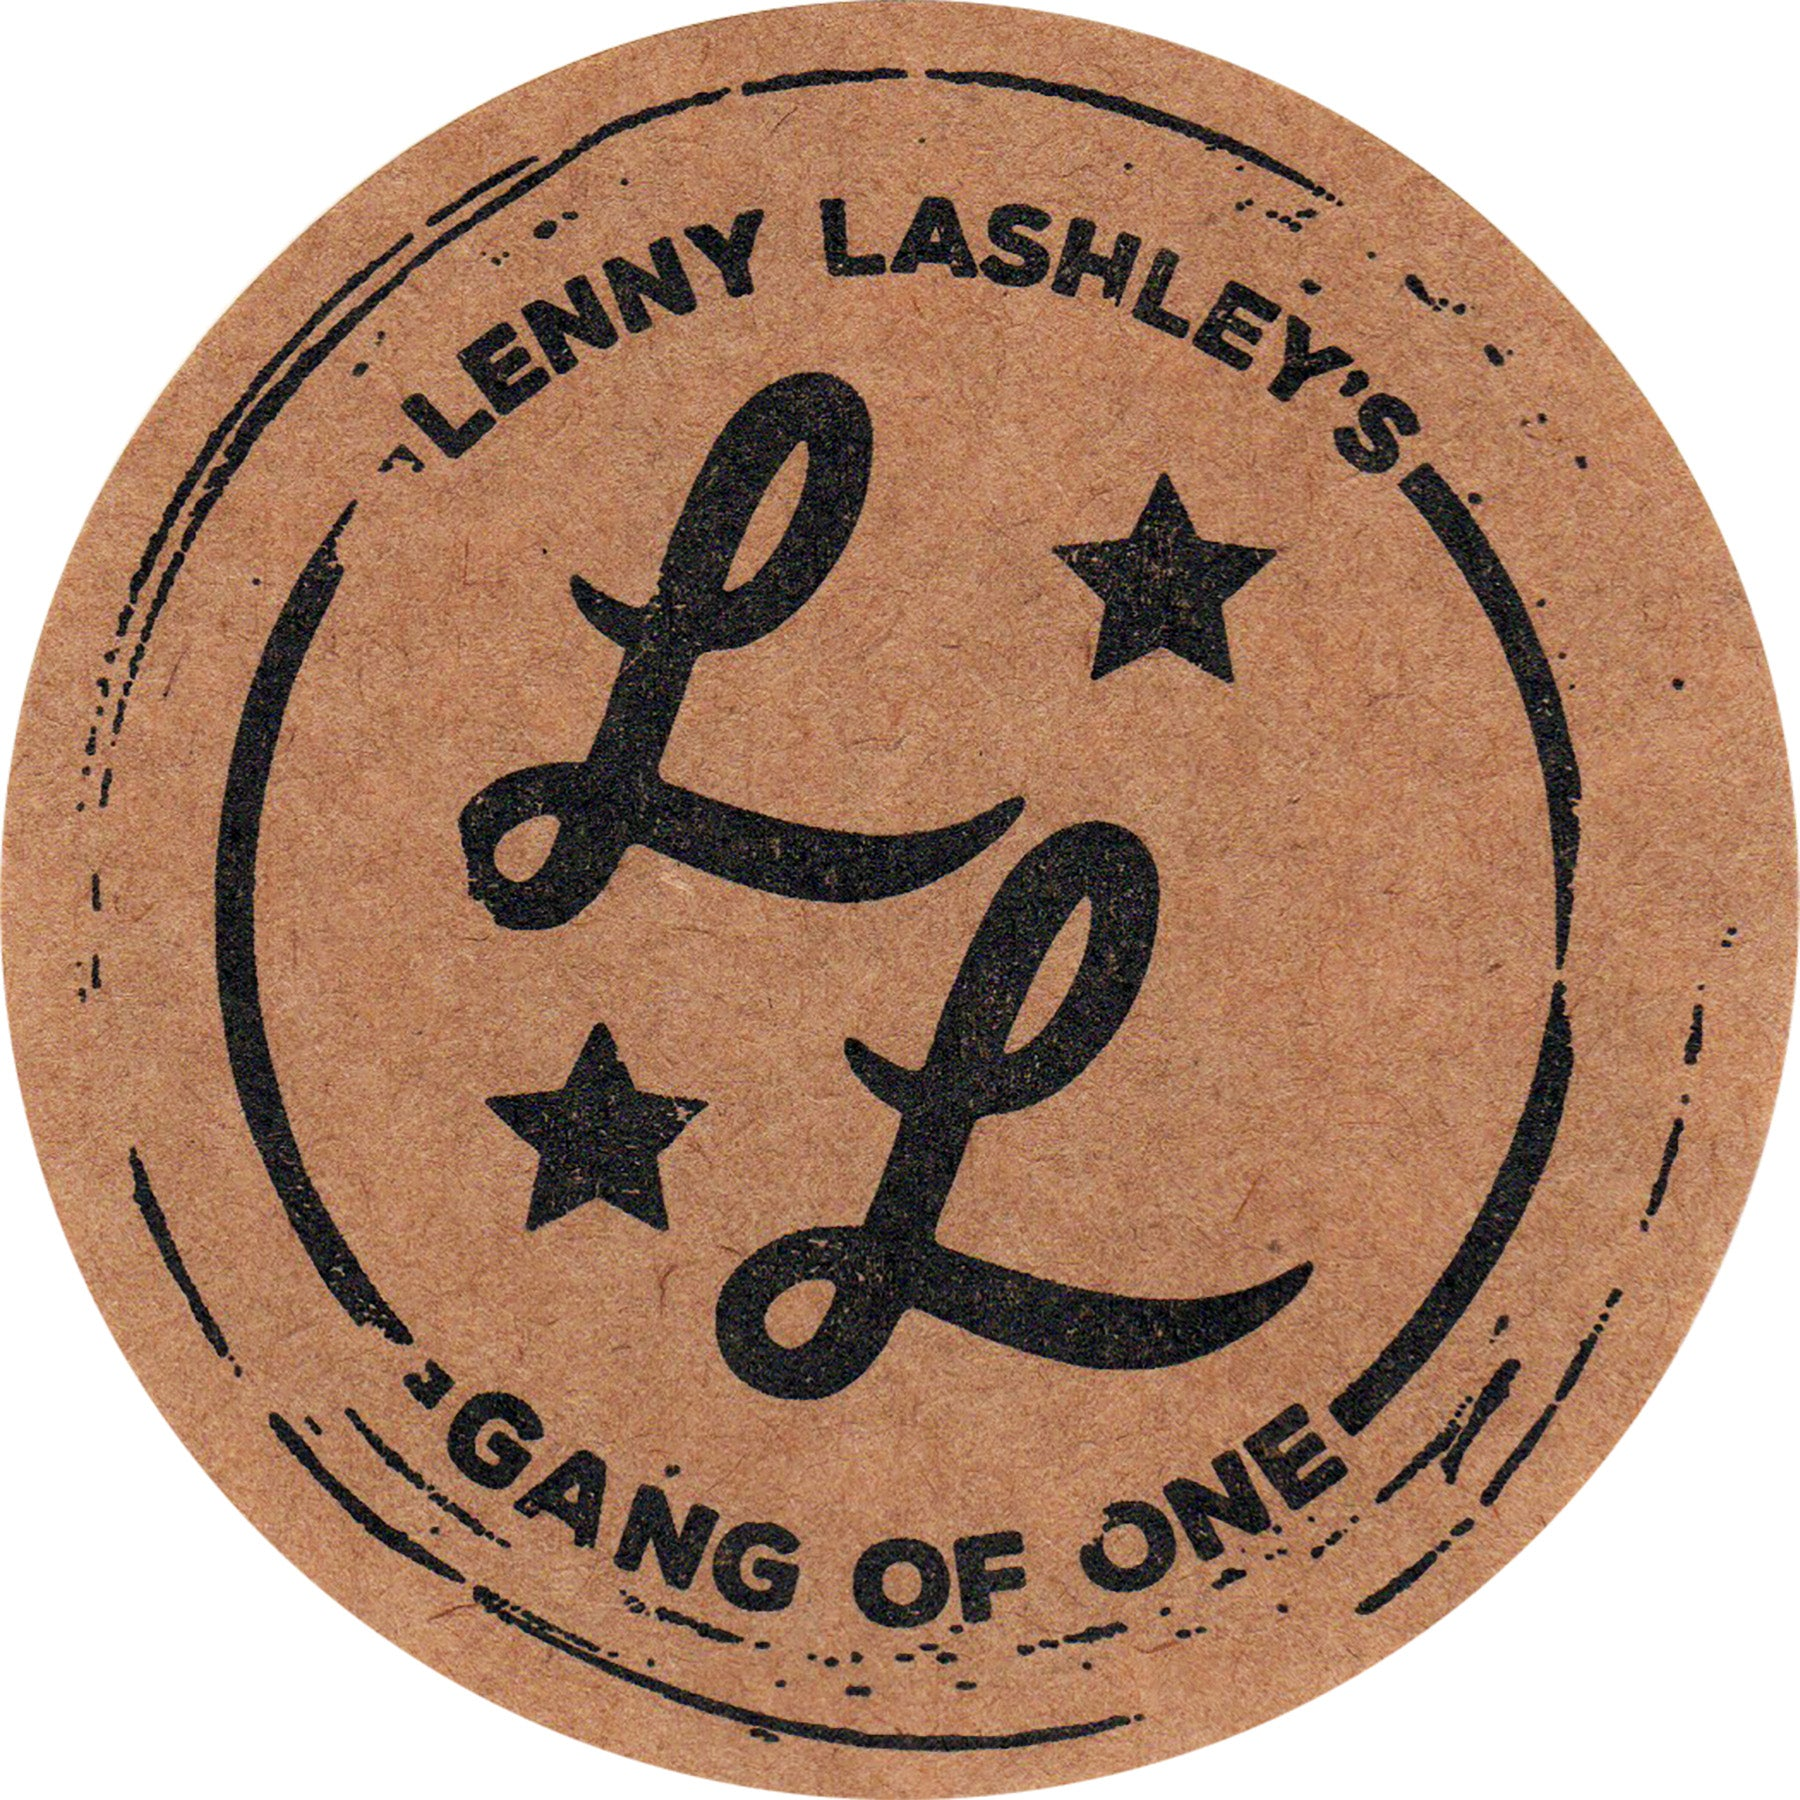 Lenny Lashley Gang of One - Logo - Sticker